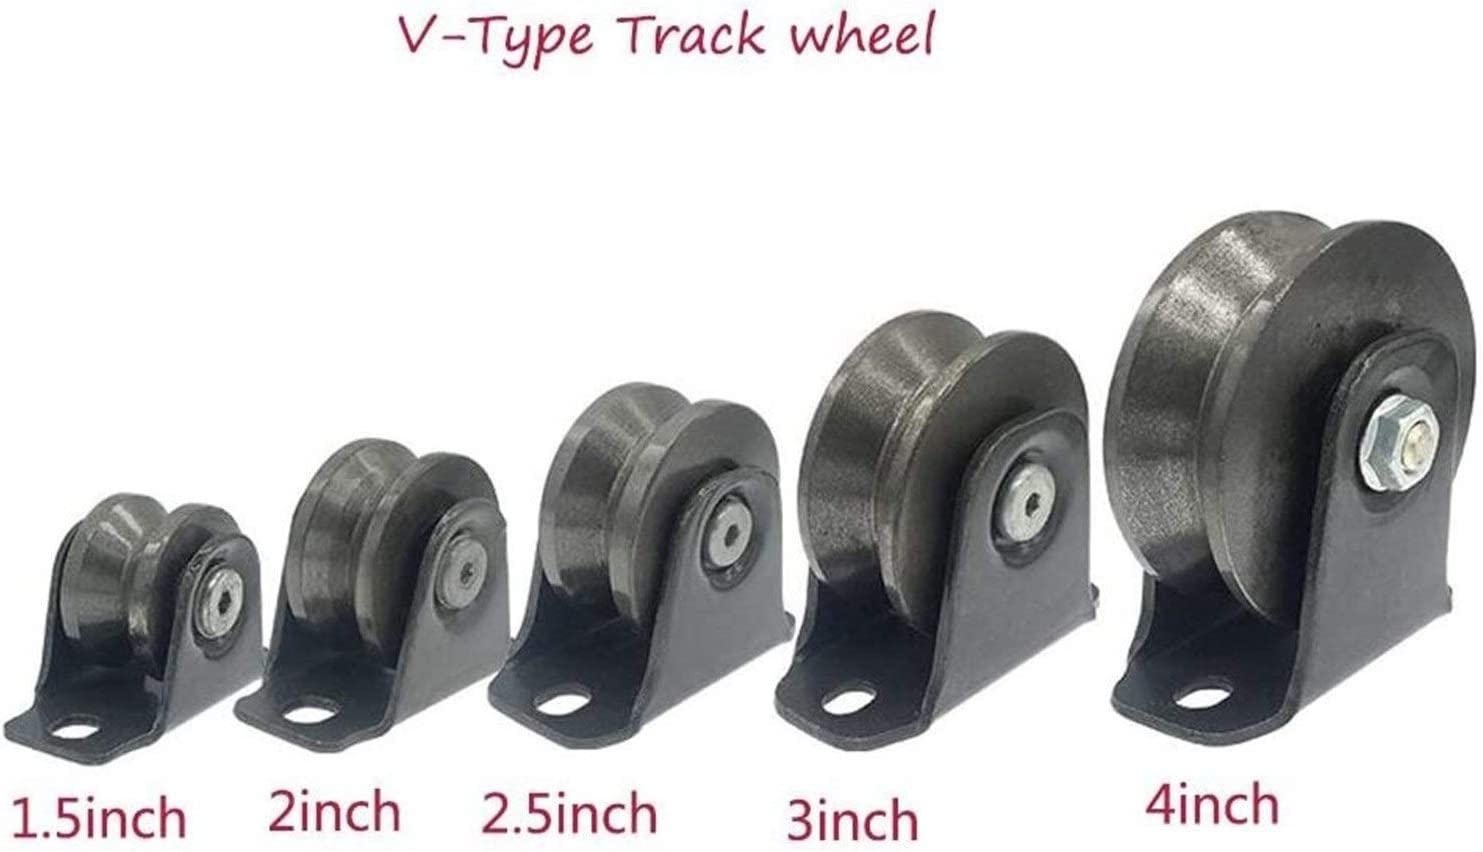 Steel Heavy Duty Castors,V-Type Track Sheave Castors,Heavy Duty Cast Iron Castors,Orientation Castor Wheels,Thickened Bracket,for Angle Iron,Sliding Doors,Industrial Machinery,2pc,Load Bearing Is Stro